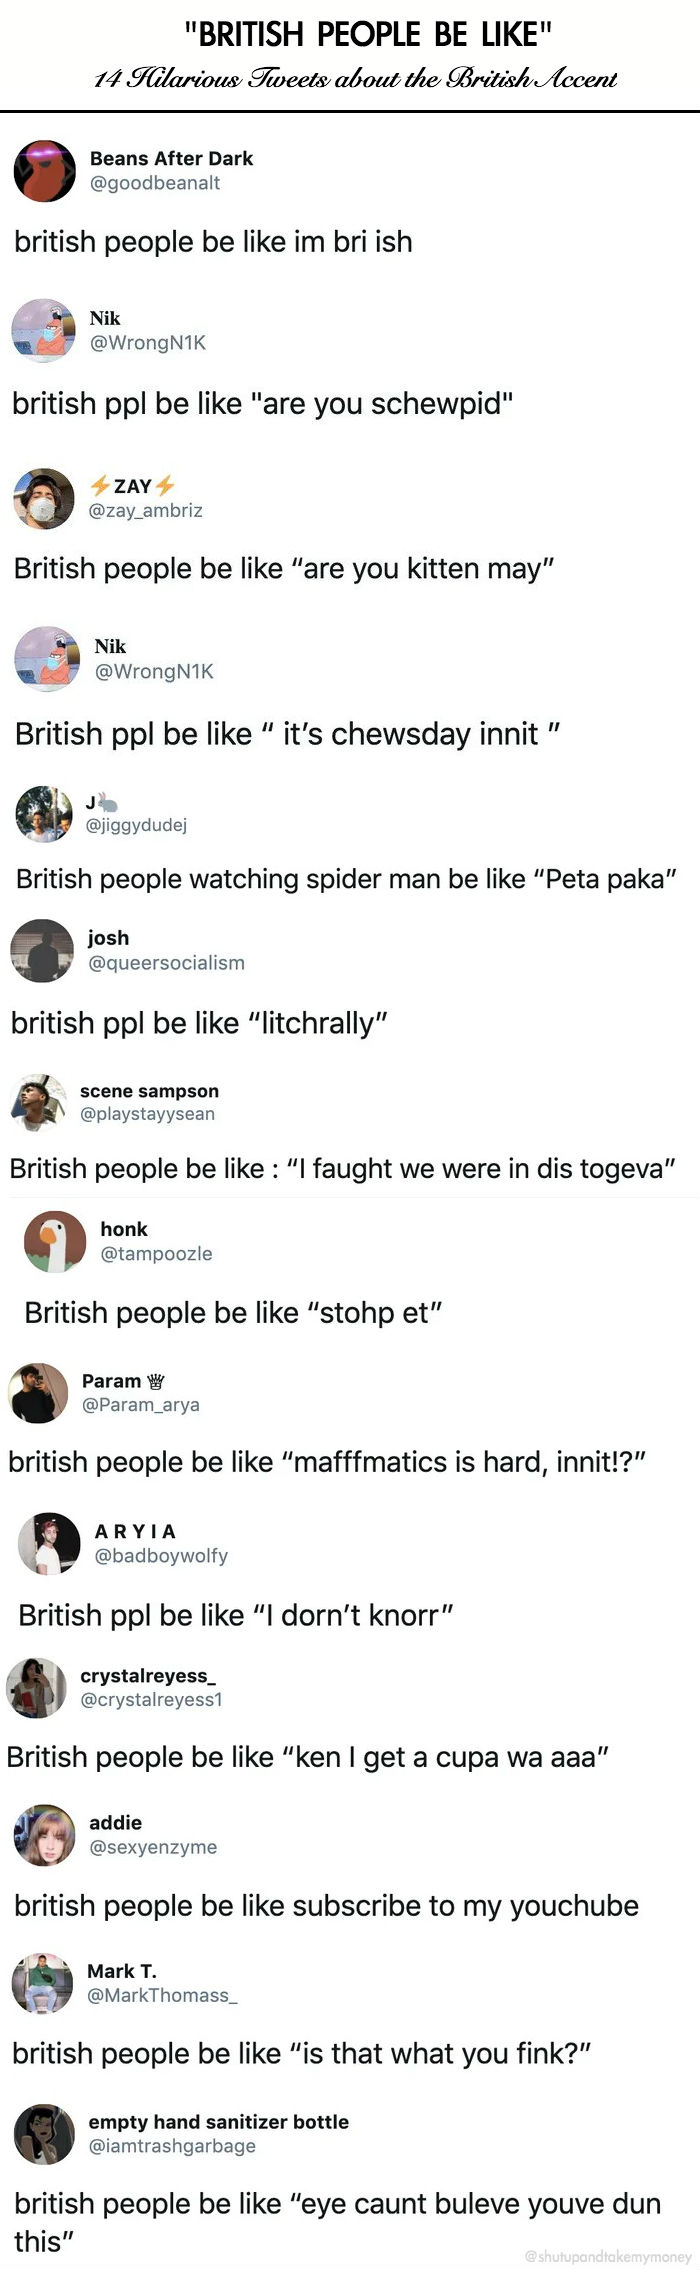 british people be like accents